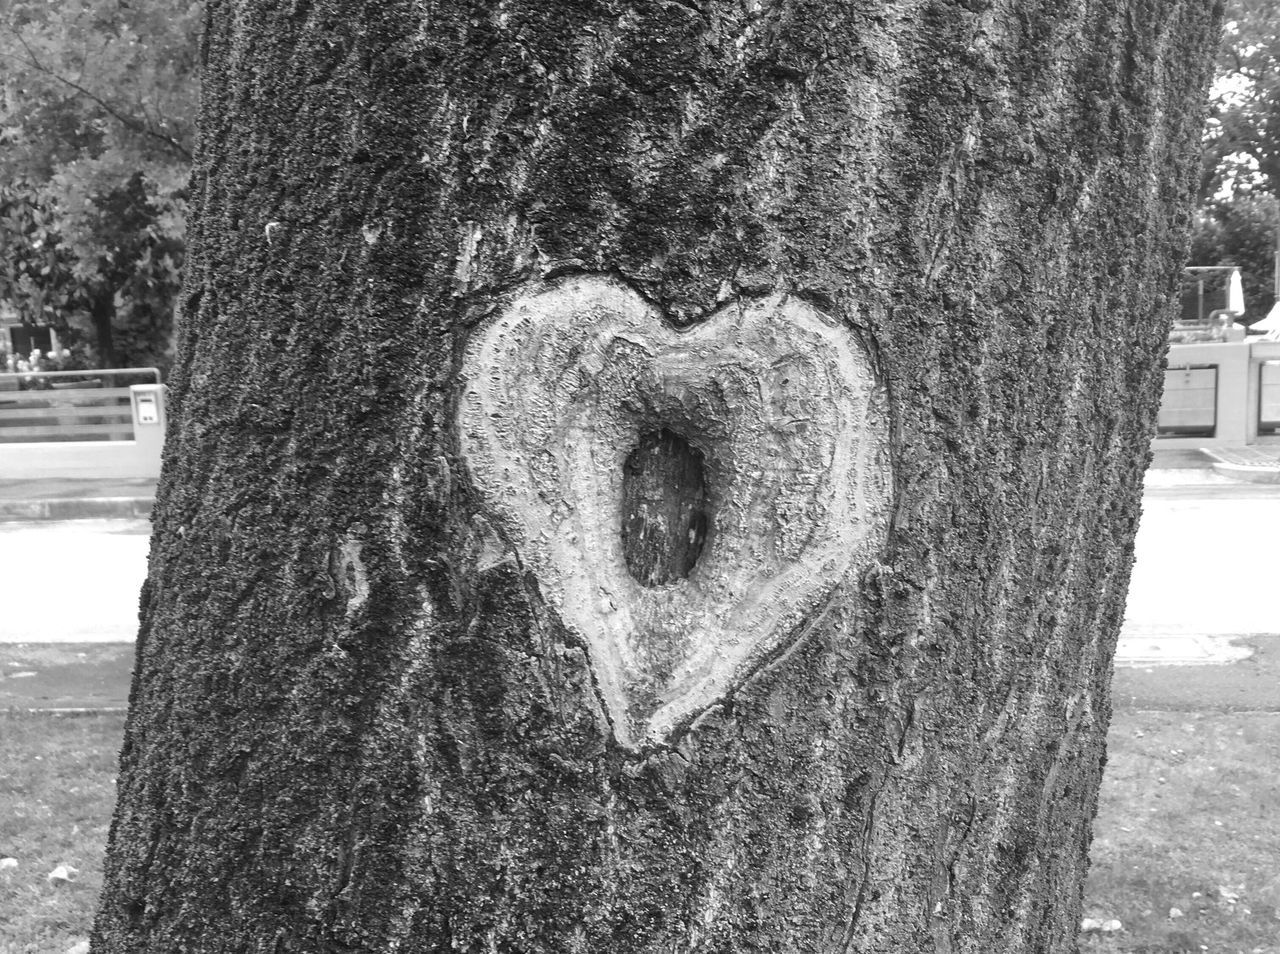 Tree Trunk Heart Shape Nature Outdoors No People Close-up Hearts Tree